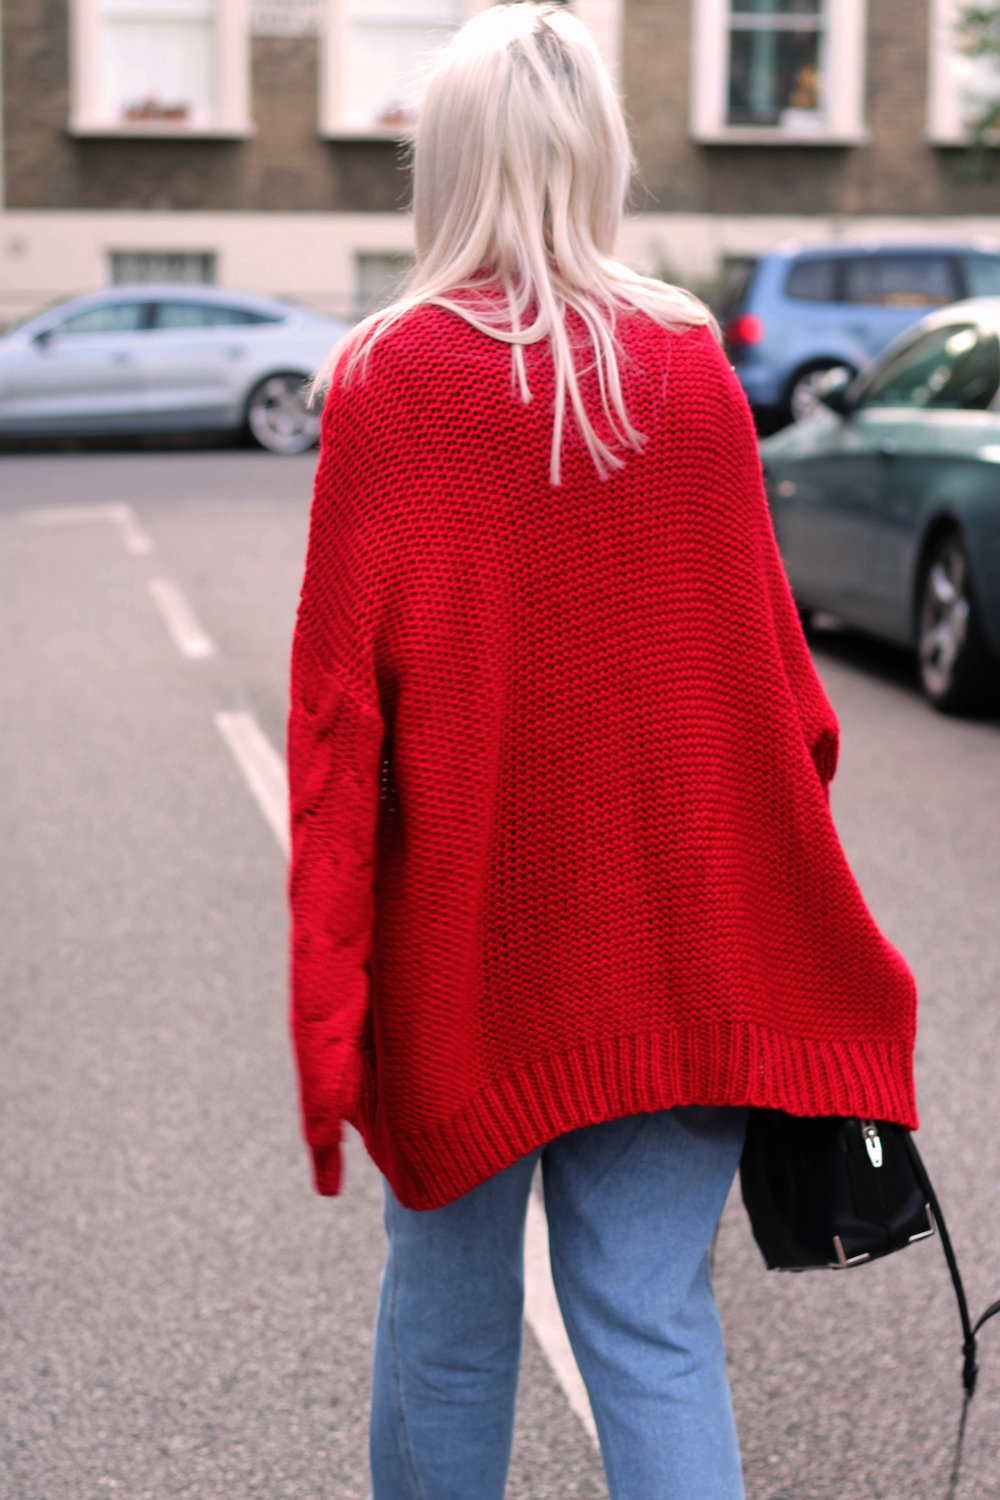 topshop jeans, next red cardigan, tie front ruffle top, ego boots, northern magpie, joey taylor 7